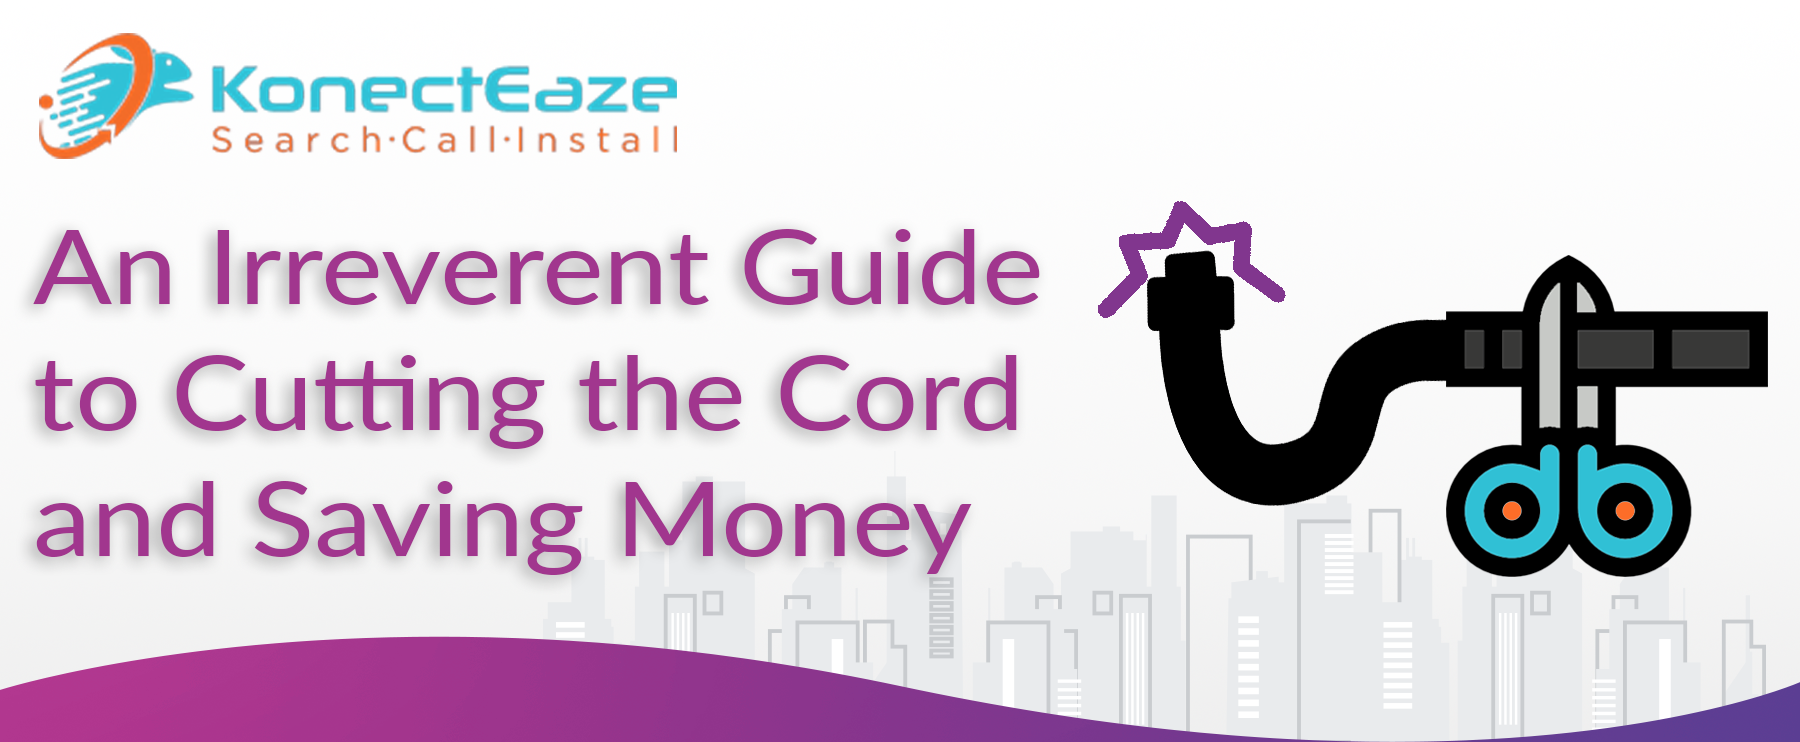 An Irreverent Guide to Cutting the Cord and Saving Money